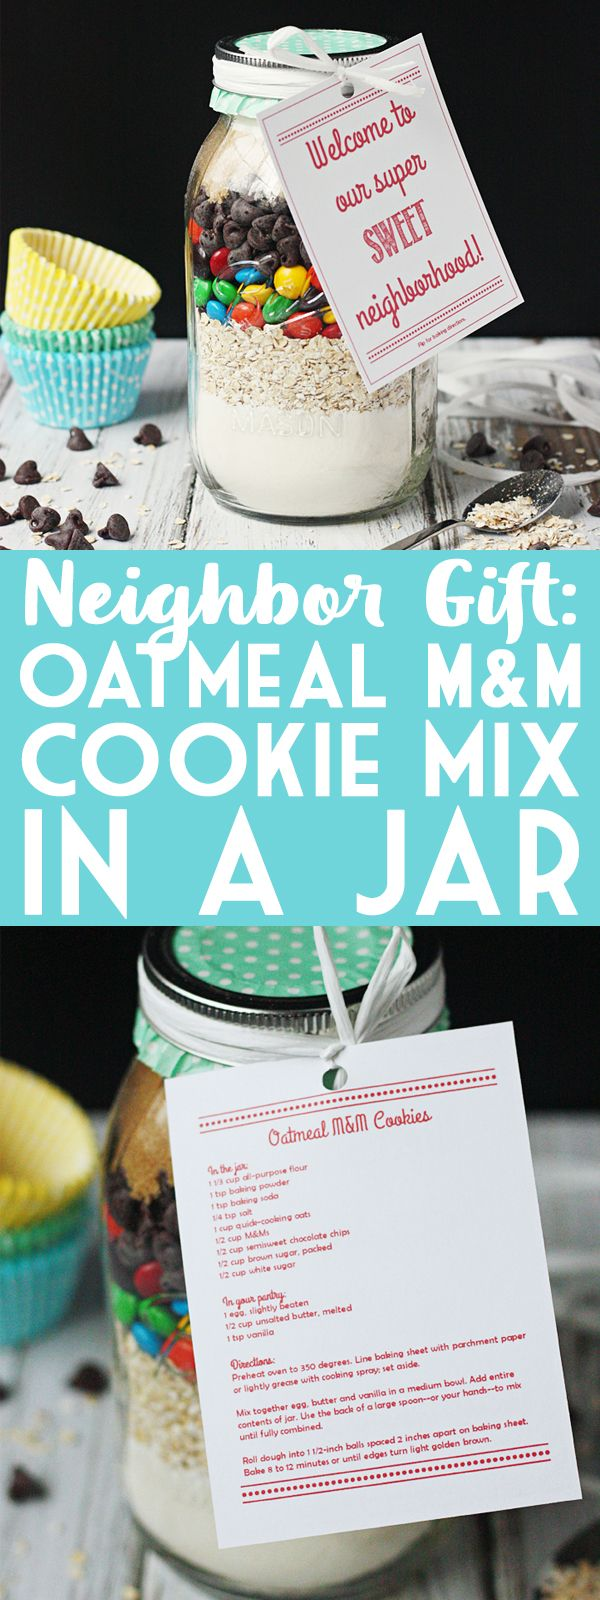 Mason Jar Neighbor Gift: Oatmeal M&M Cookie Mix in a Jar -- Use this super yummy oatmeal M&M cookie mix in a jar with free printable gift tag to welcome new neighbors to your neighborhood. | isthisreallymylife.com